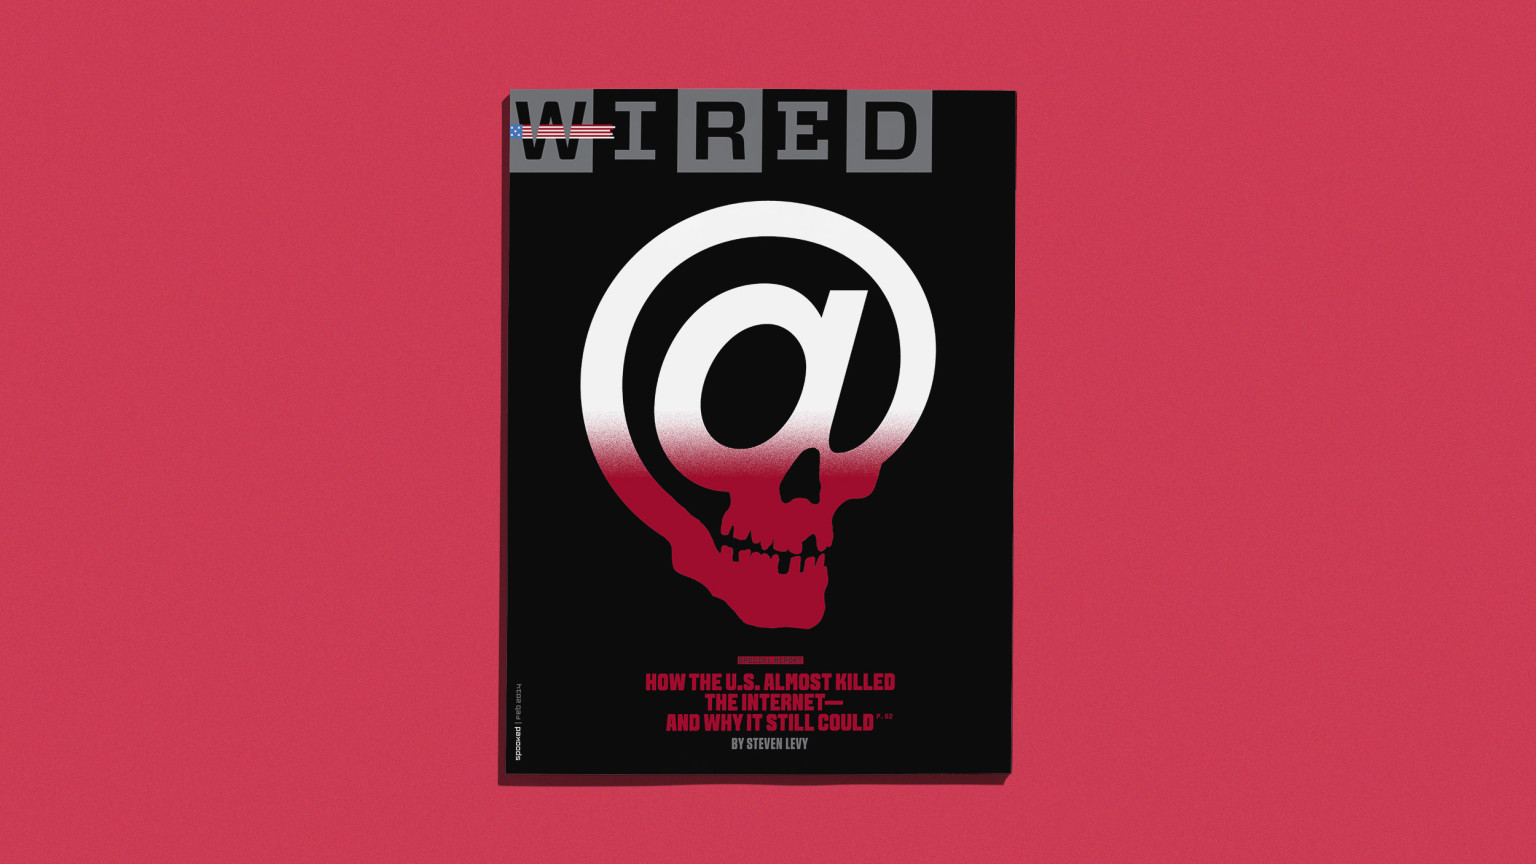 WIRED 2013 Redesign